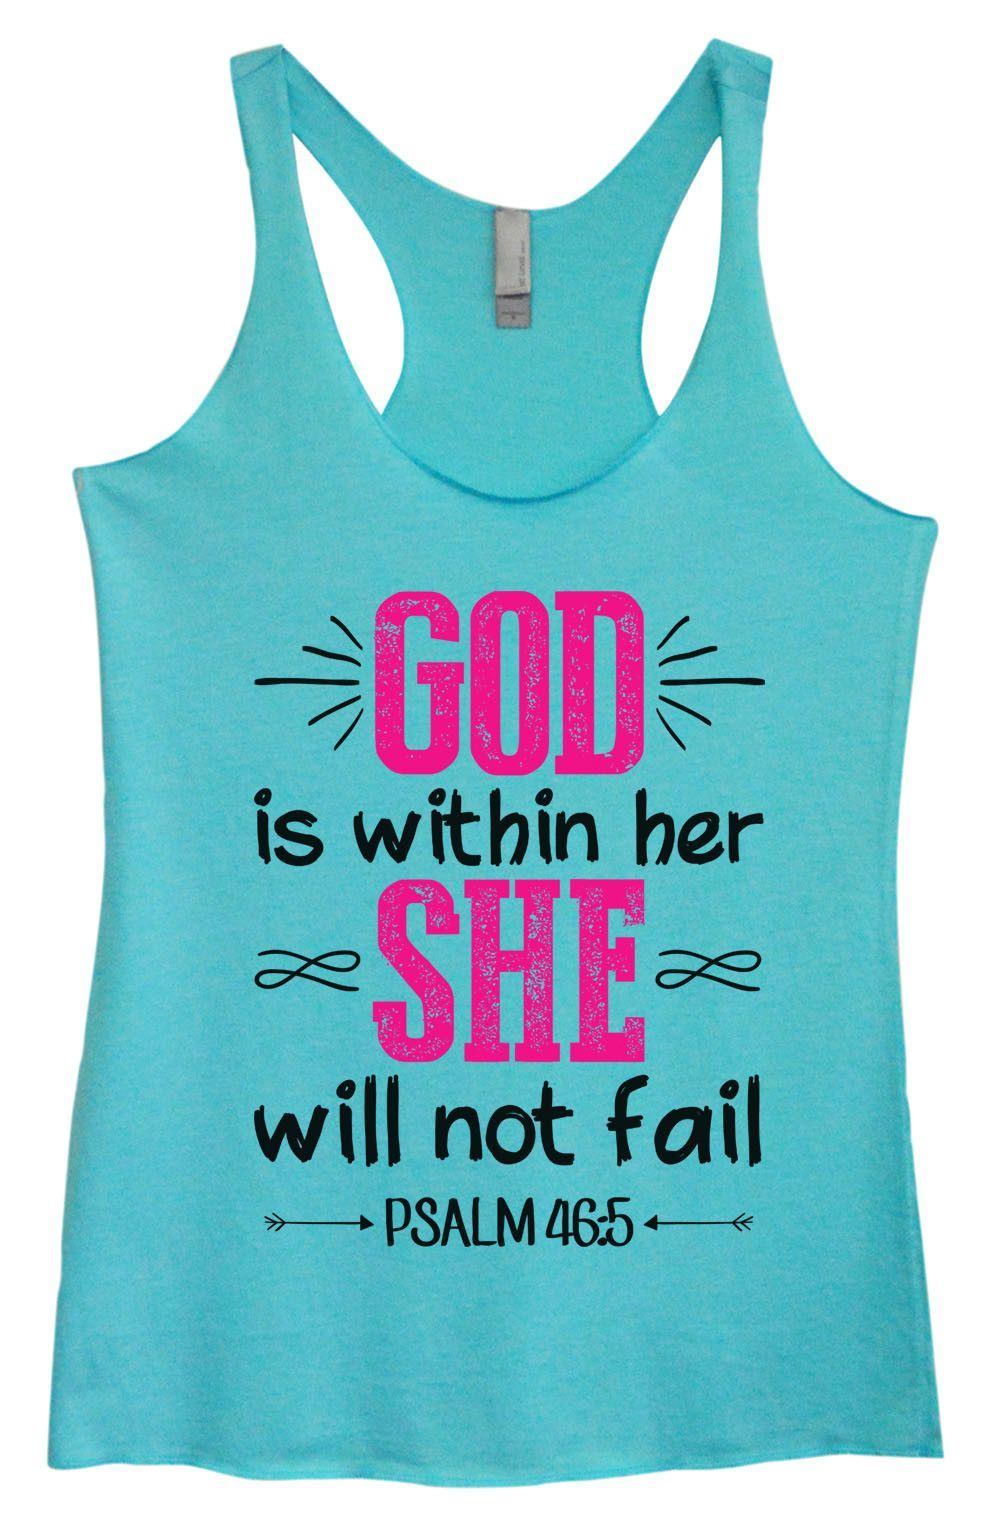 Womens Tri-Blend Tank Top - God Is Within Her She Will Not Fail Psalm 46:5